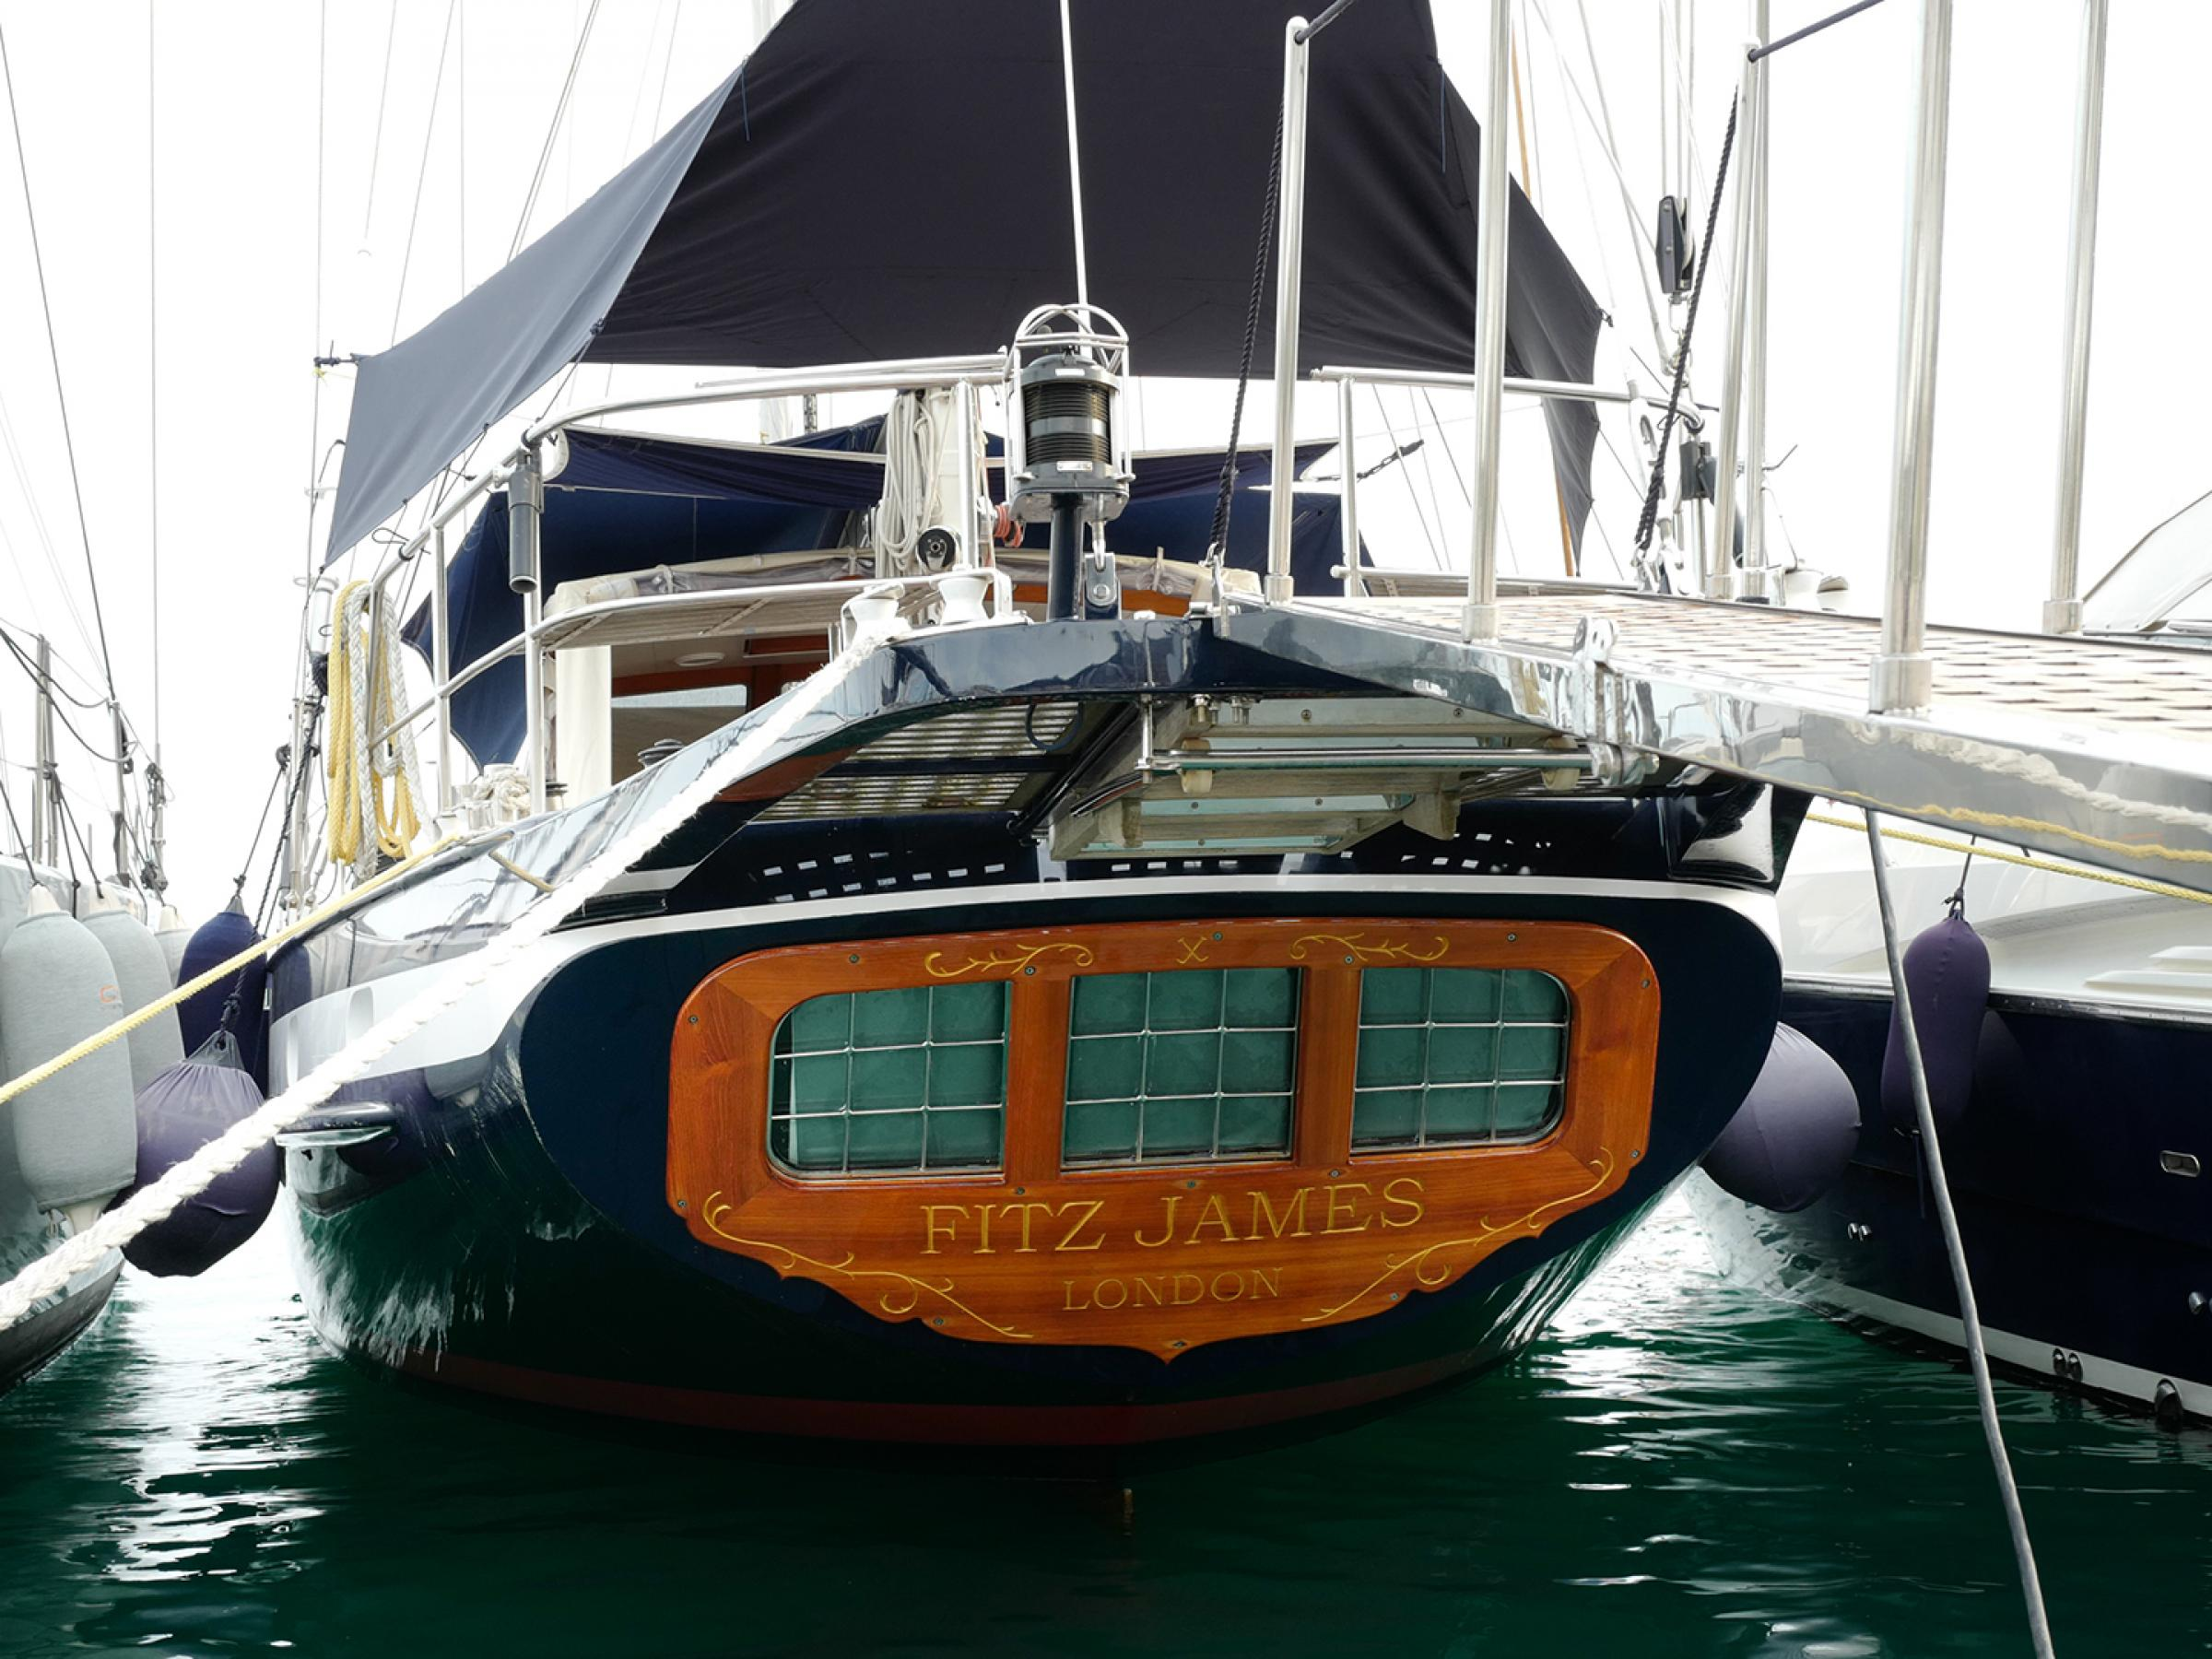 The Fitz James, a Jongert 21S sailing yacht has been sold in a direct deal